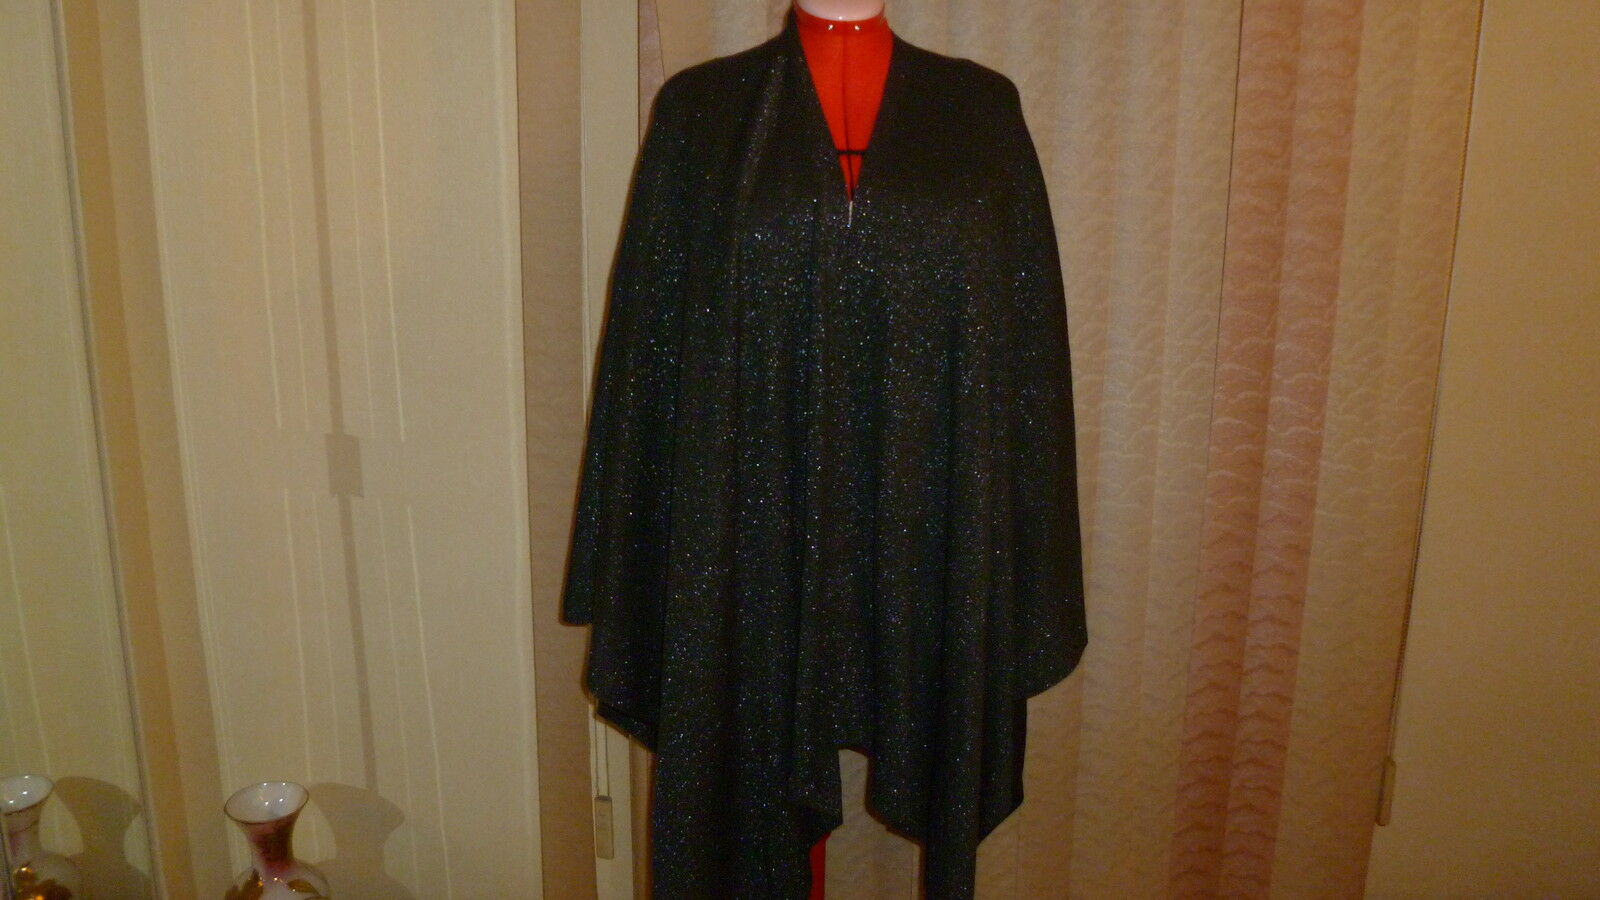 NWT ECHOgesign knit lightweight open front poncho in charcoal one size 1X to 5X